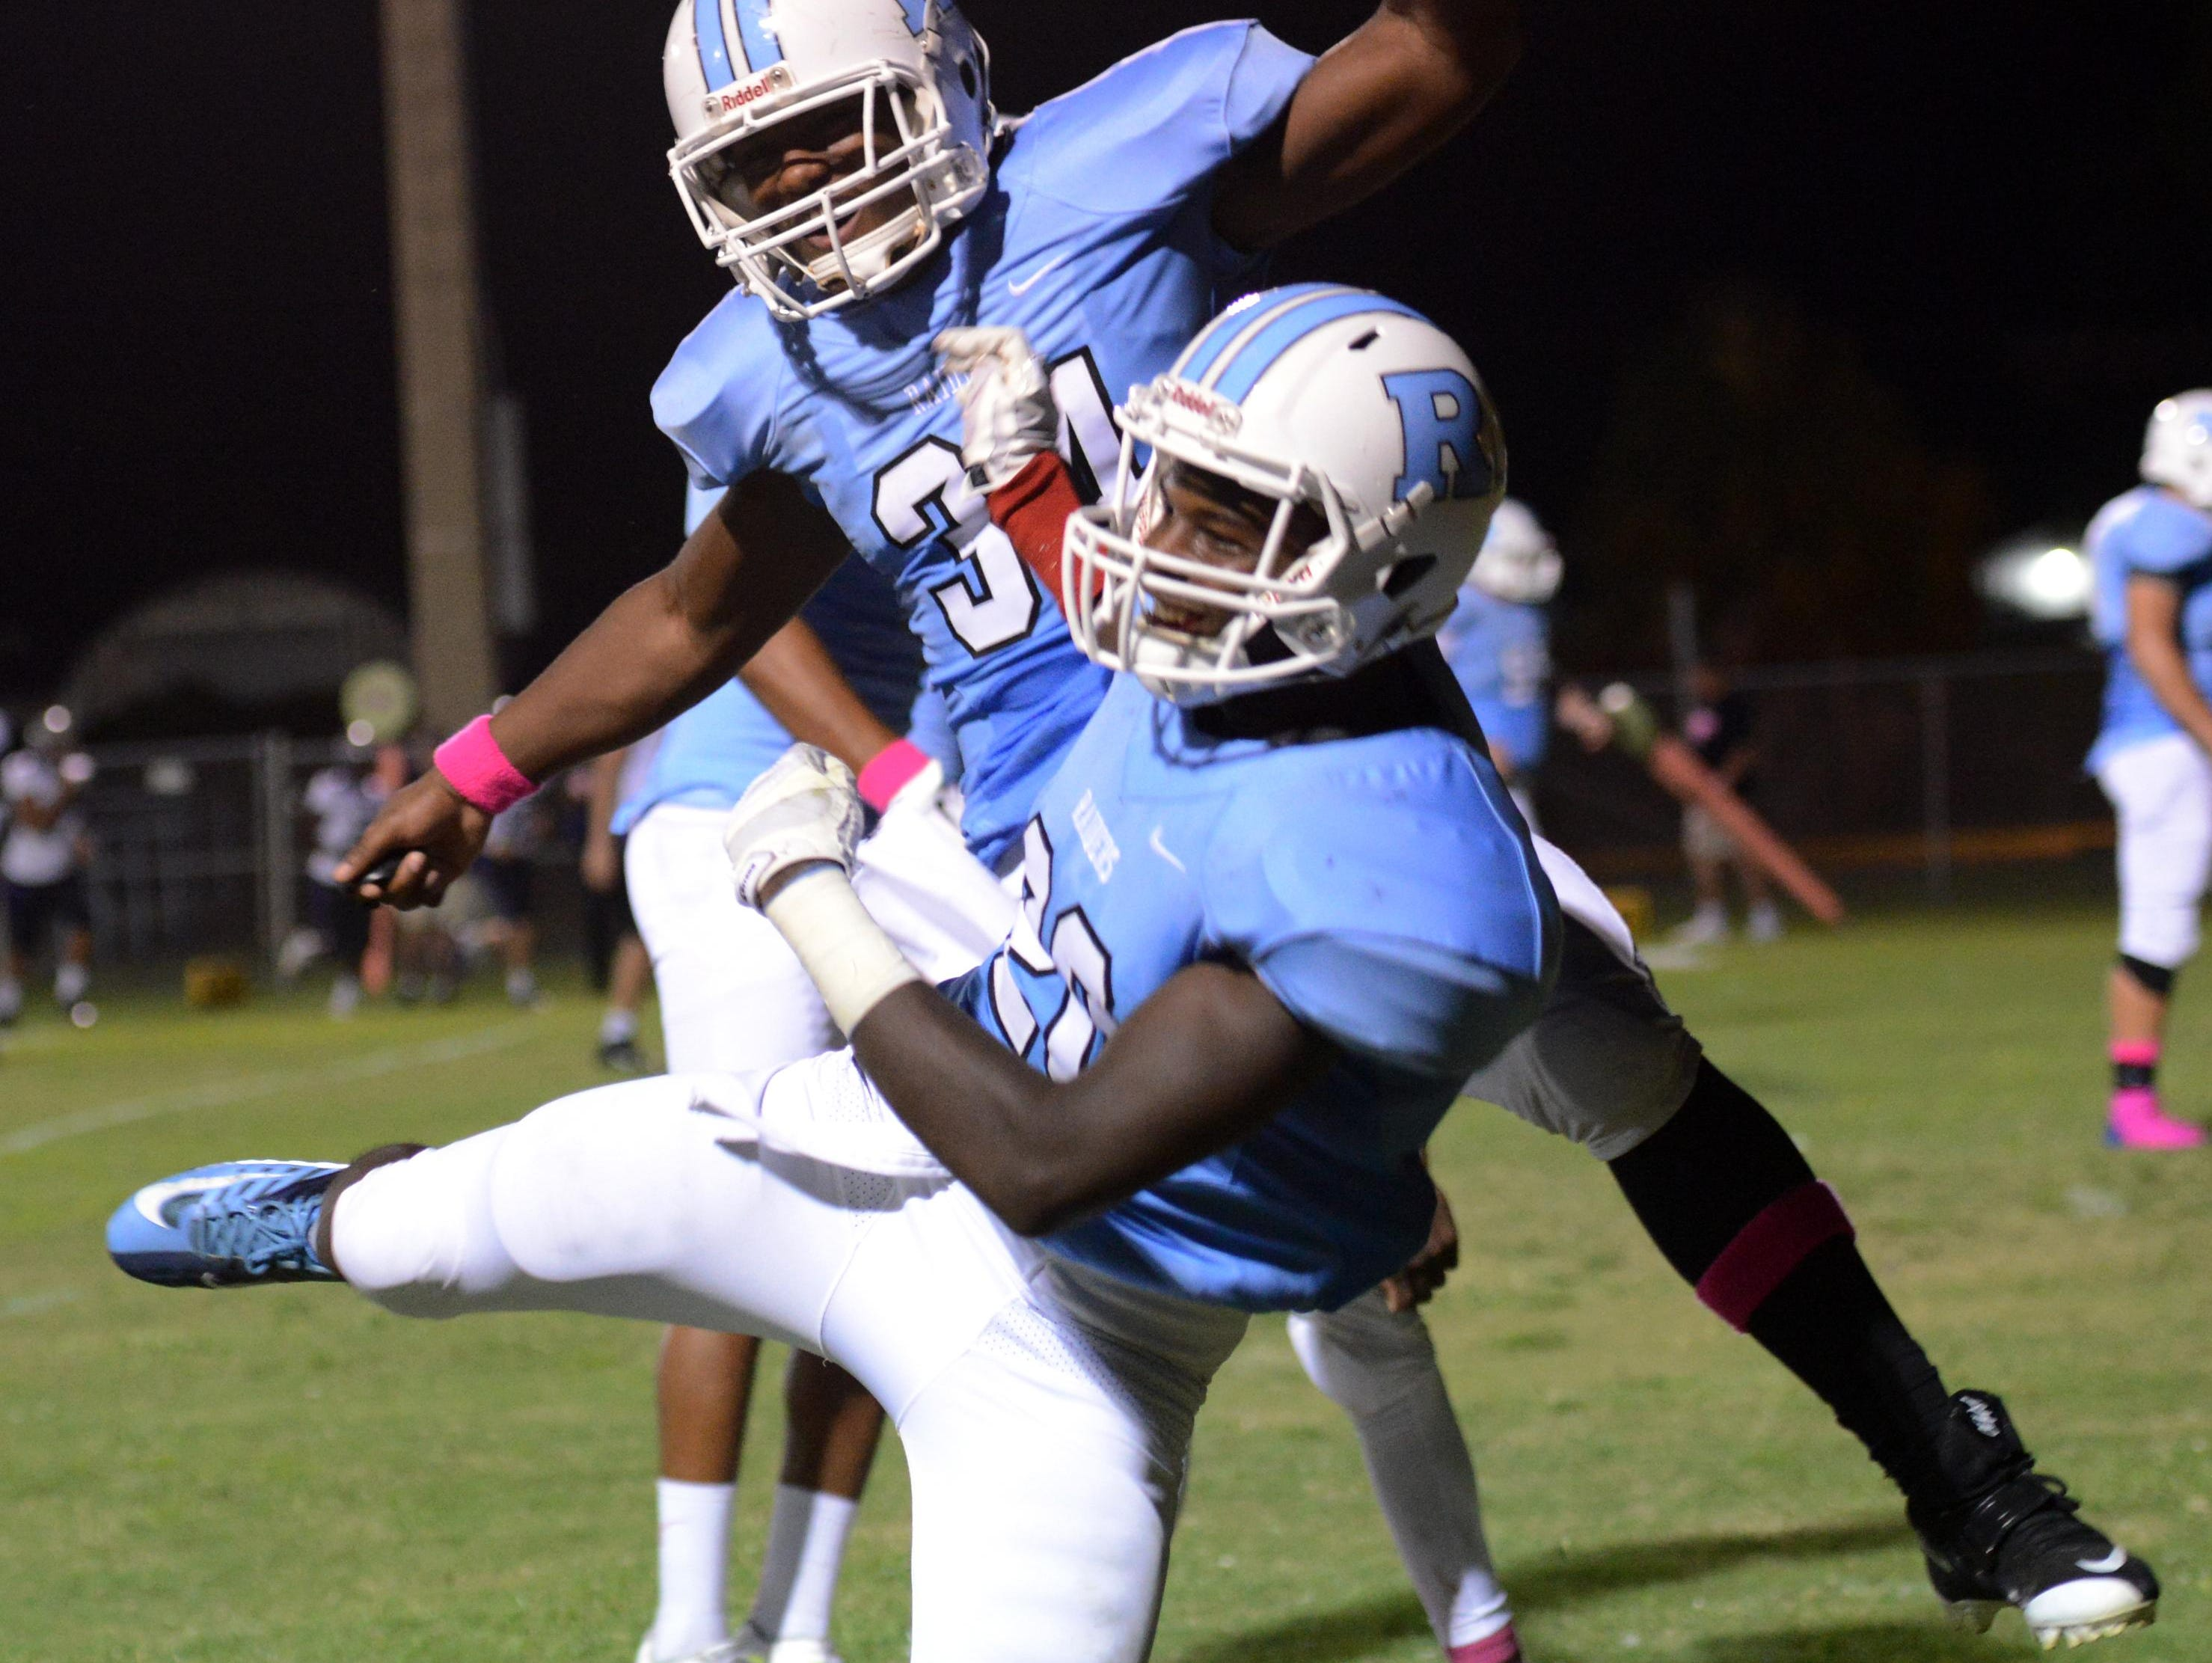 Tray Lovett of Rockledge celebrates his touchdown with teammate Orlando Oquendo during a recent game at McLarty Stadium.